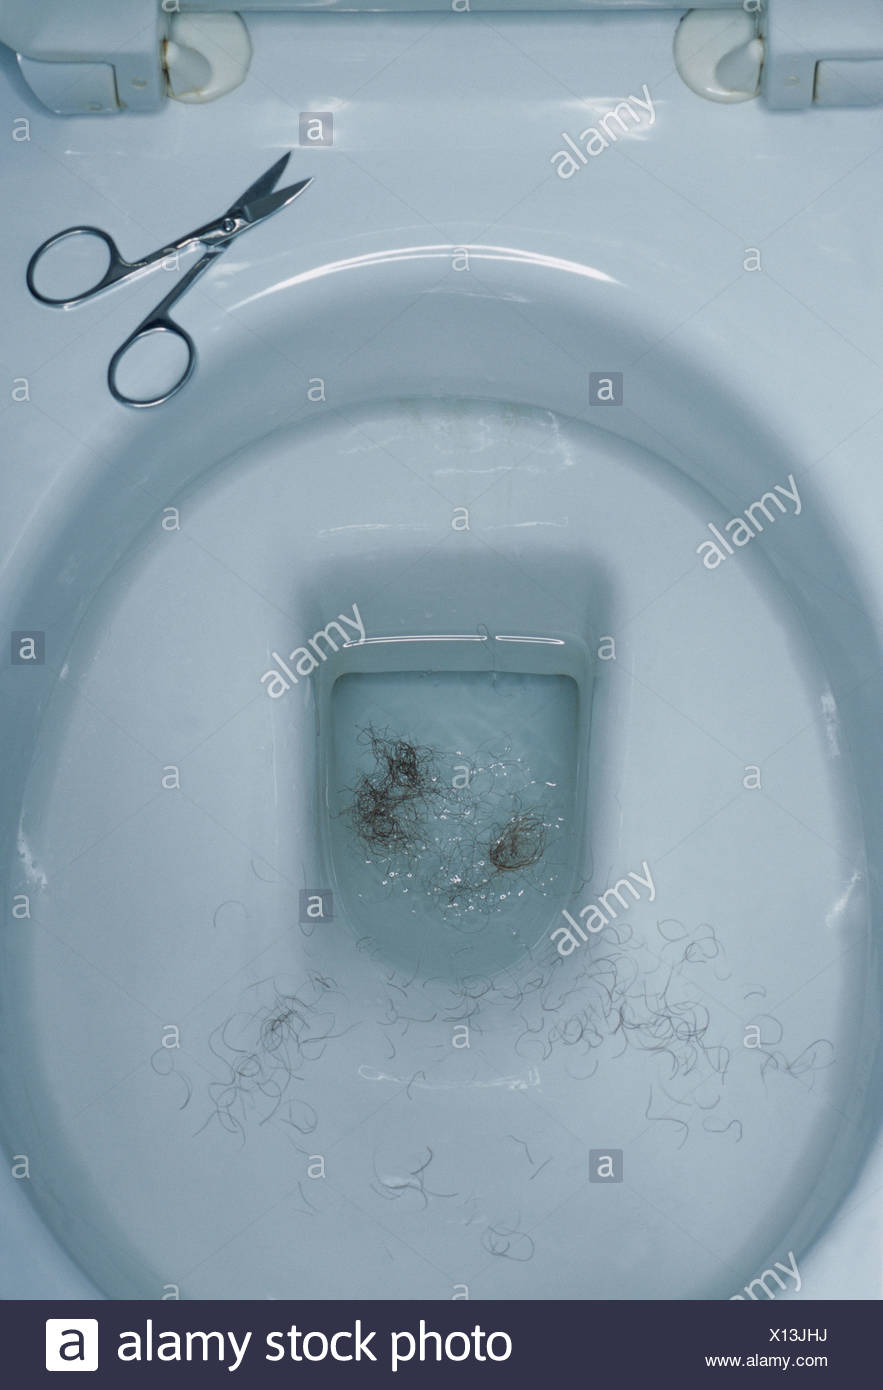 Pubic hair in a toilet bowl - Stock Image